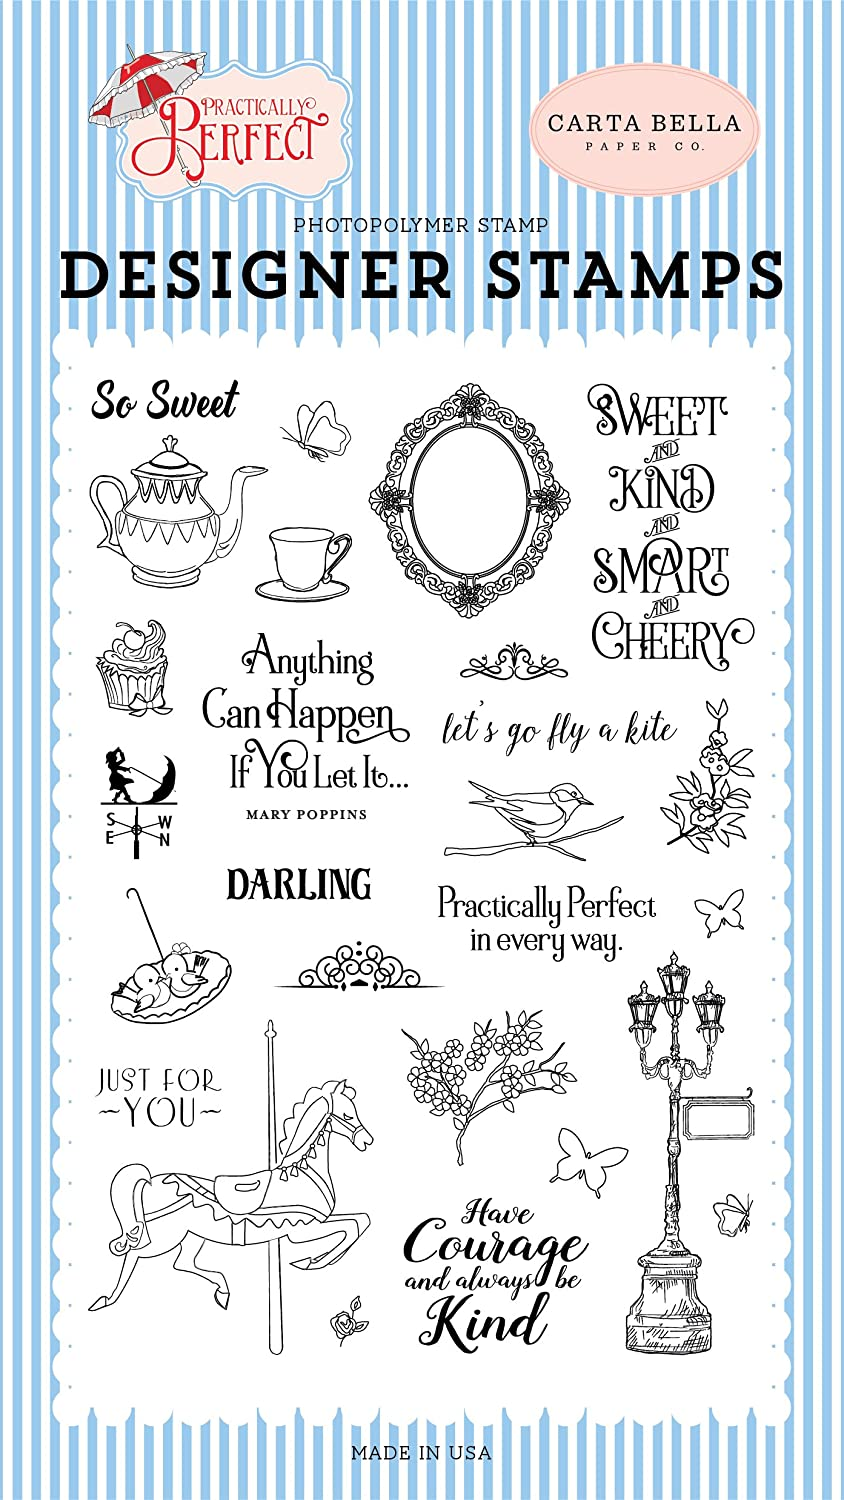 Carta Bella Paper Company Practically Perfect Stamp